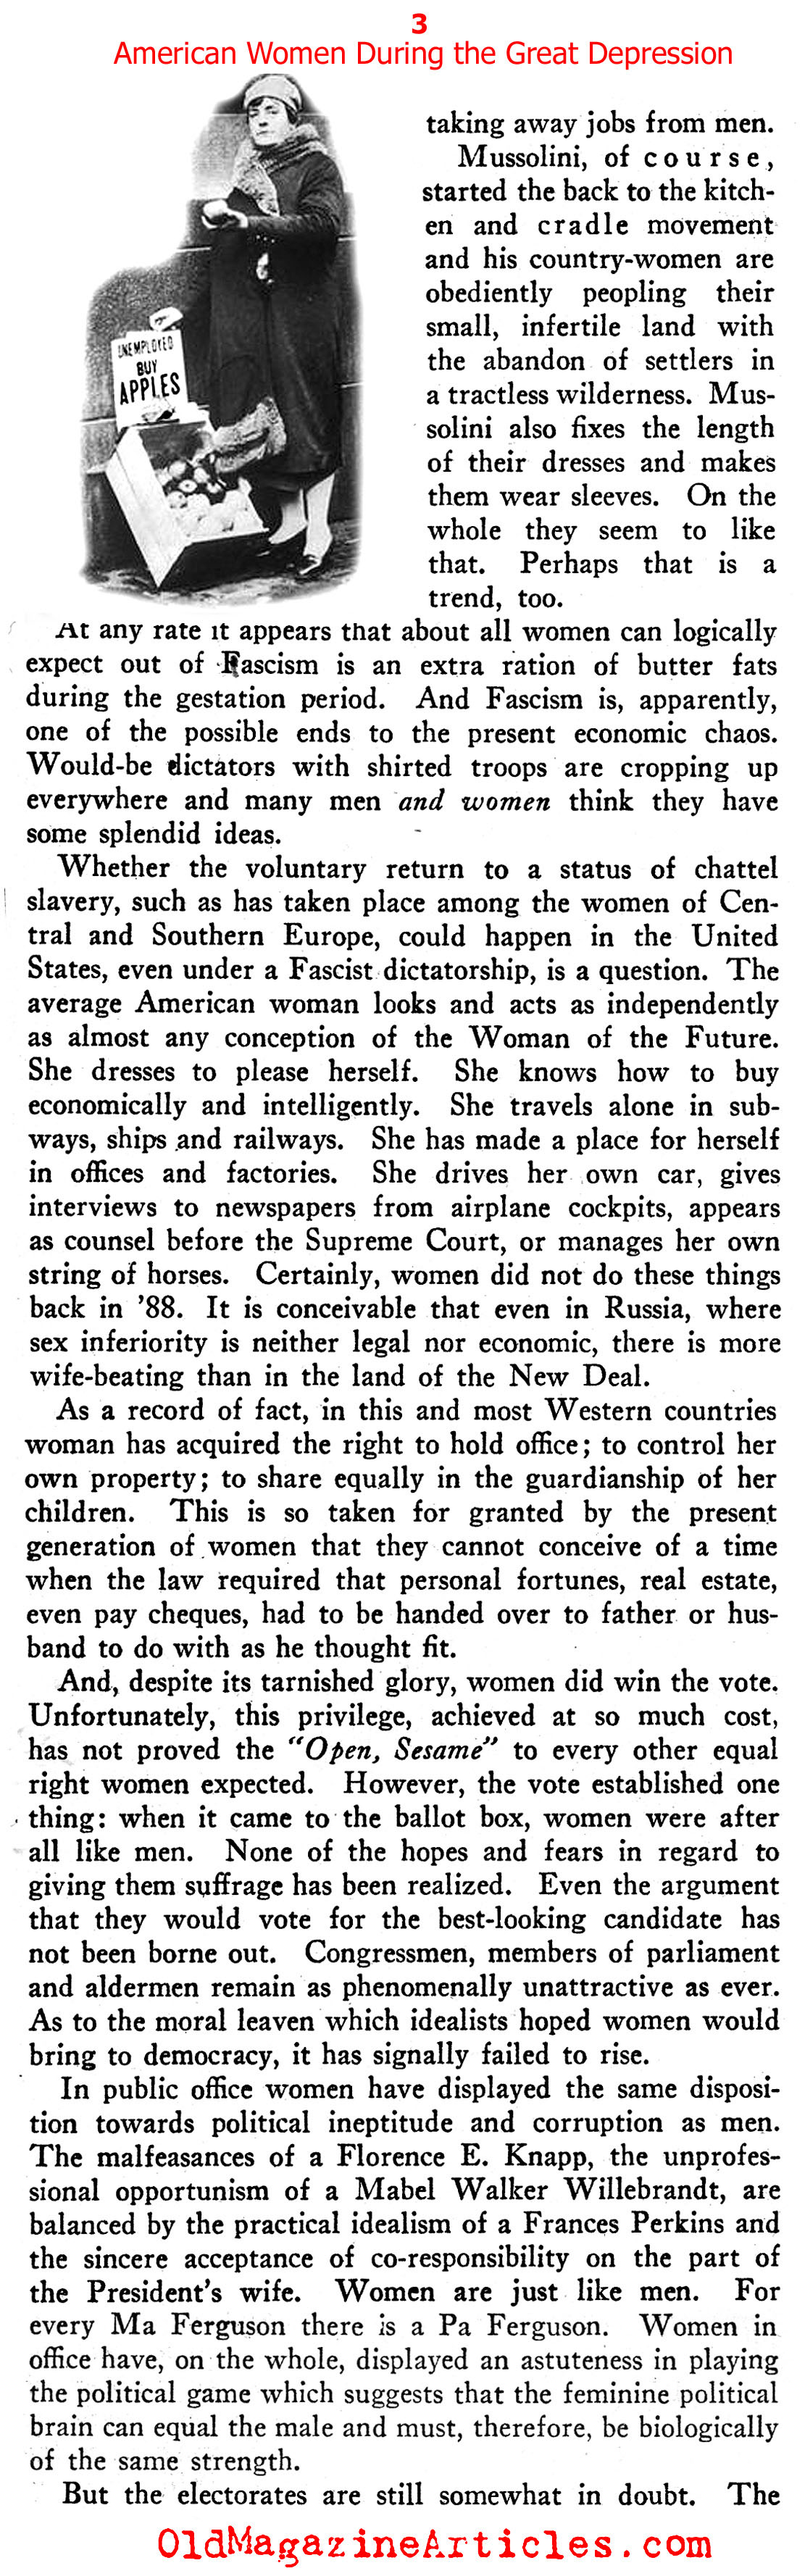 The Lot of Women in the Great Depression (New Outlook, 1934)